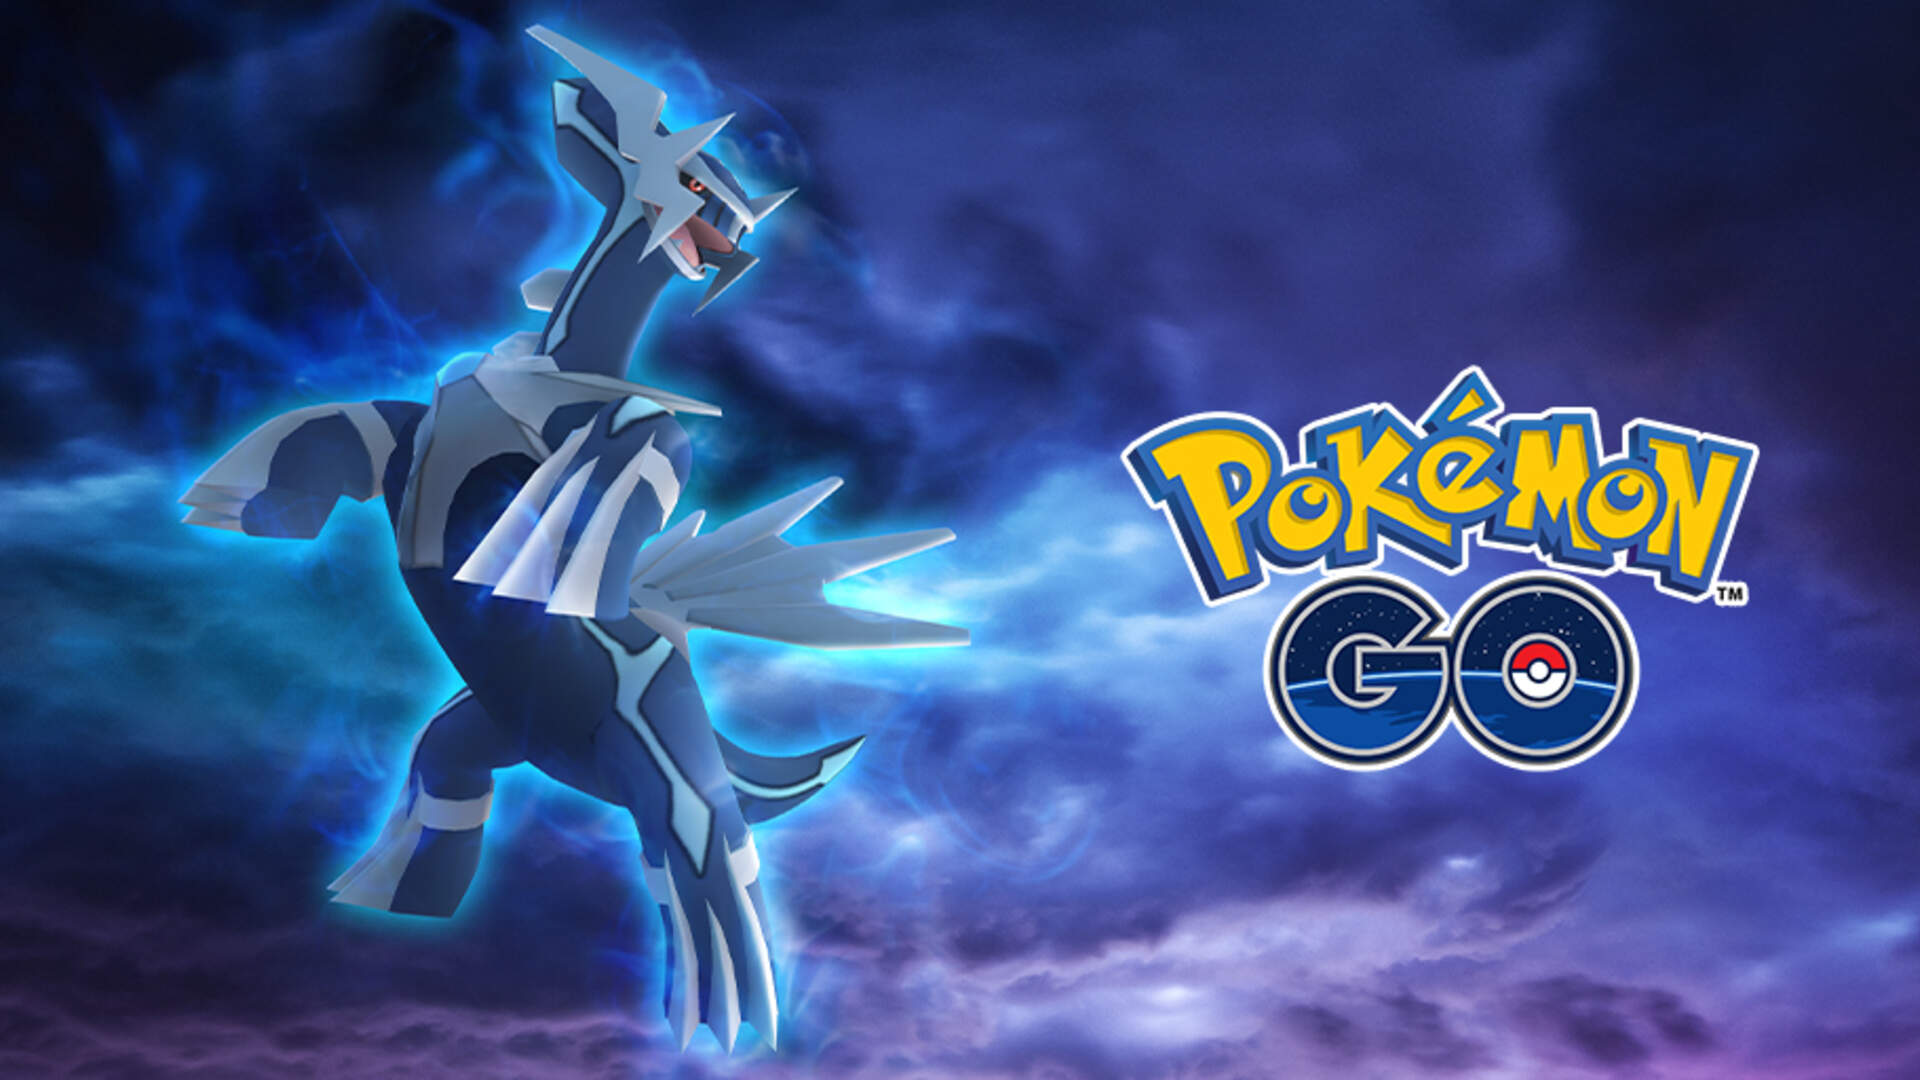 Pokemon Go Dialga Raid - Counters, Shiny, Special Raid Event